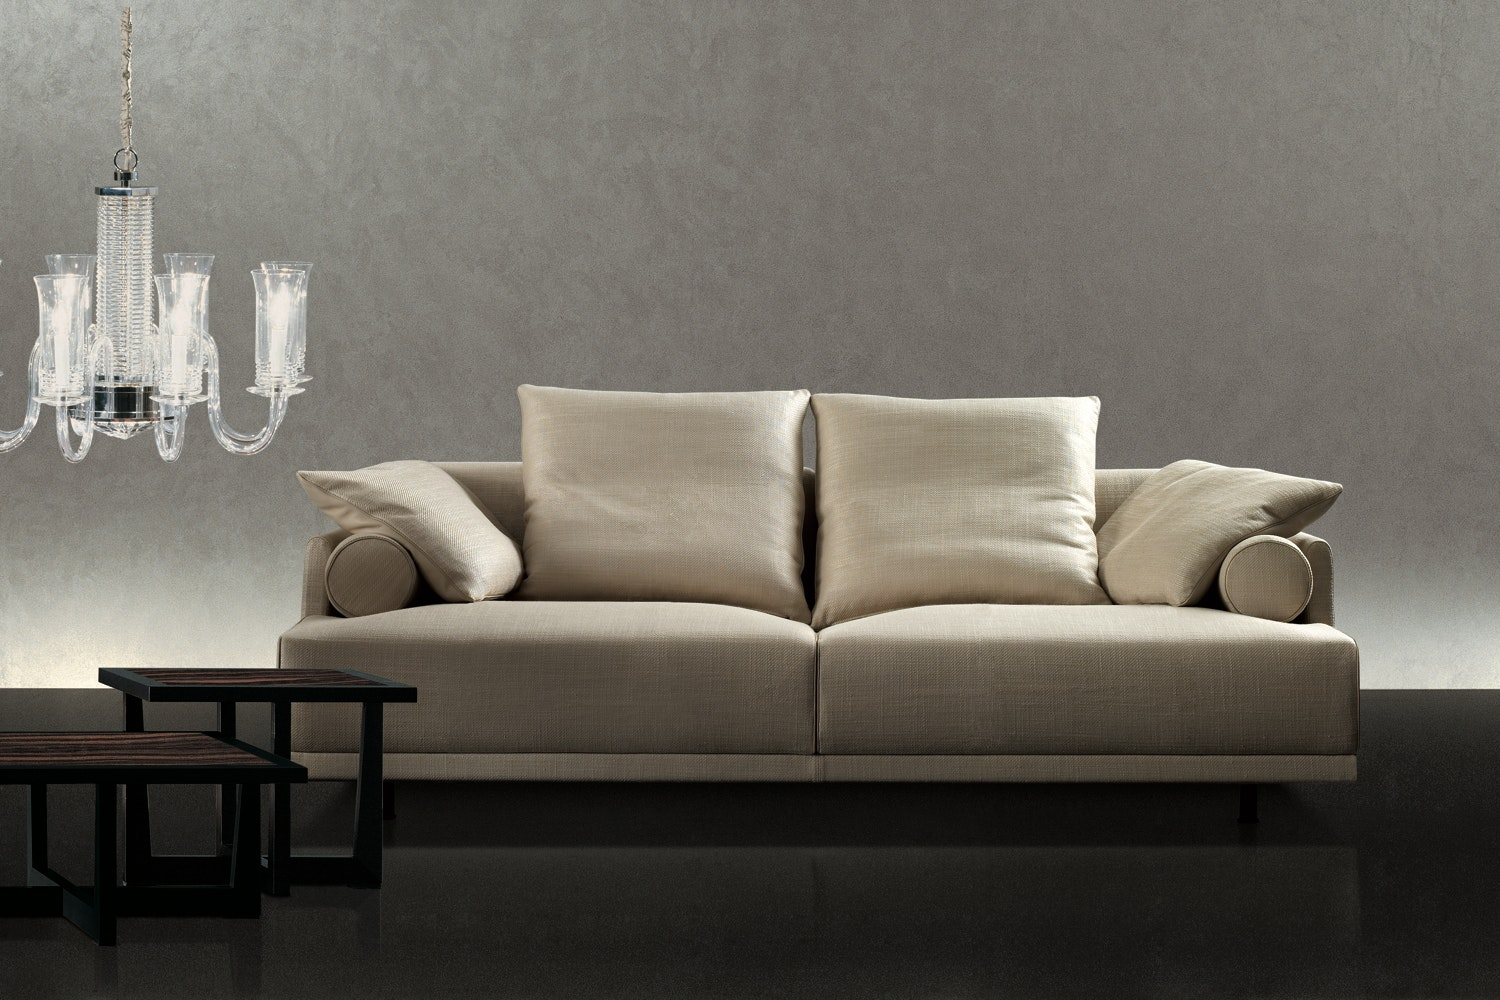 Maharaja Sofa by Antonello Mosca for Giorgetti